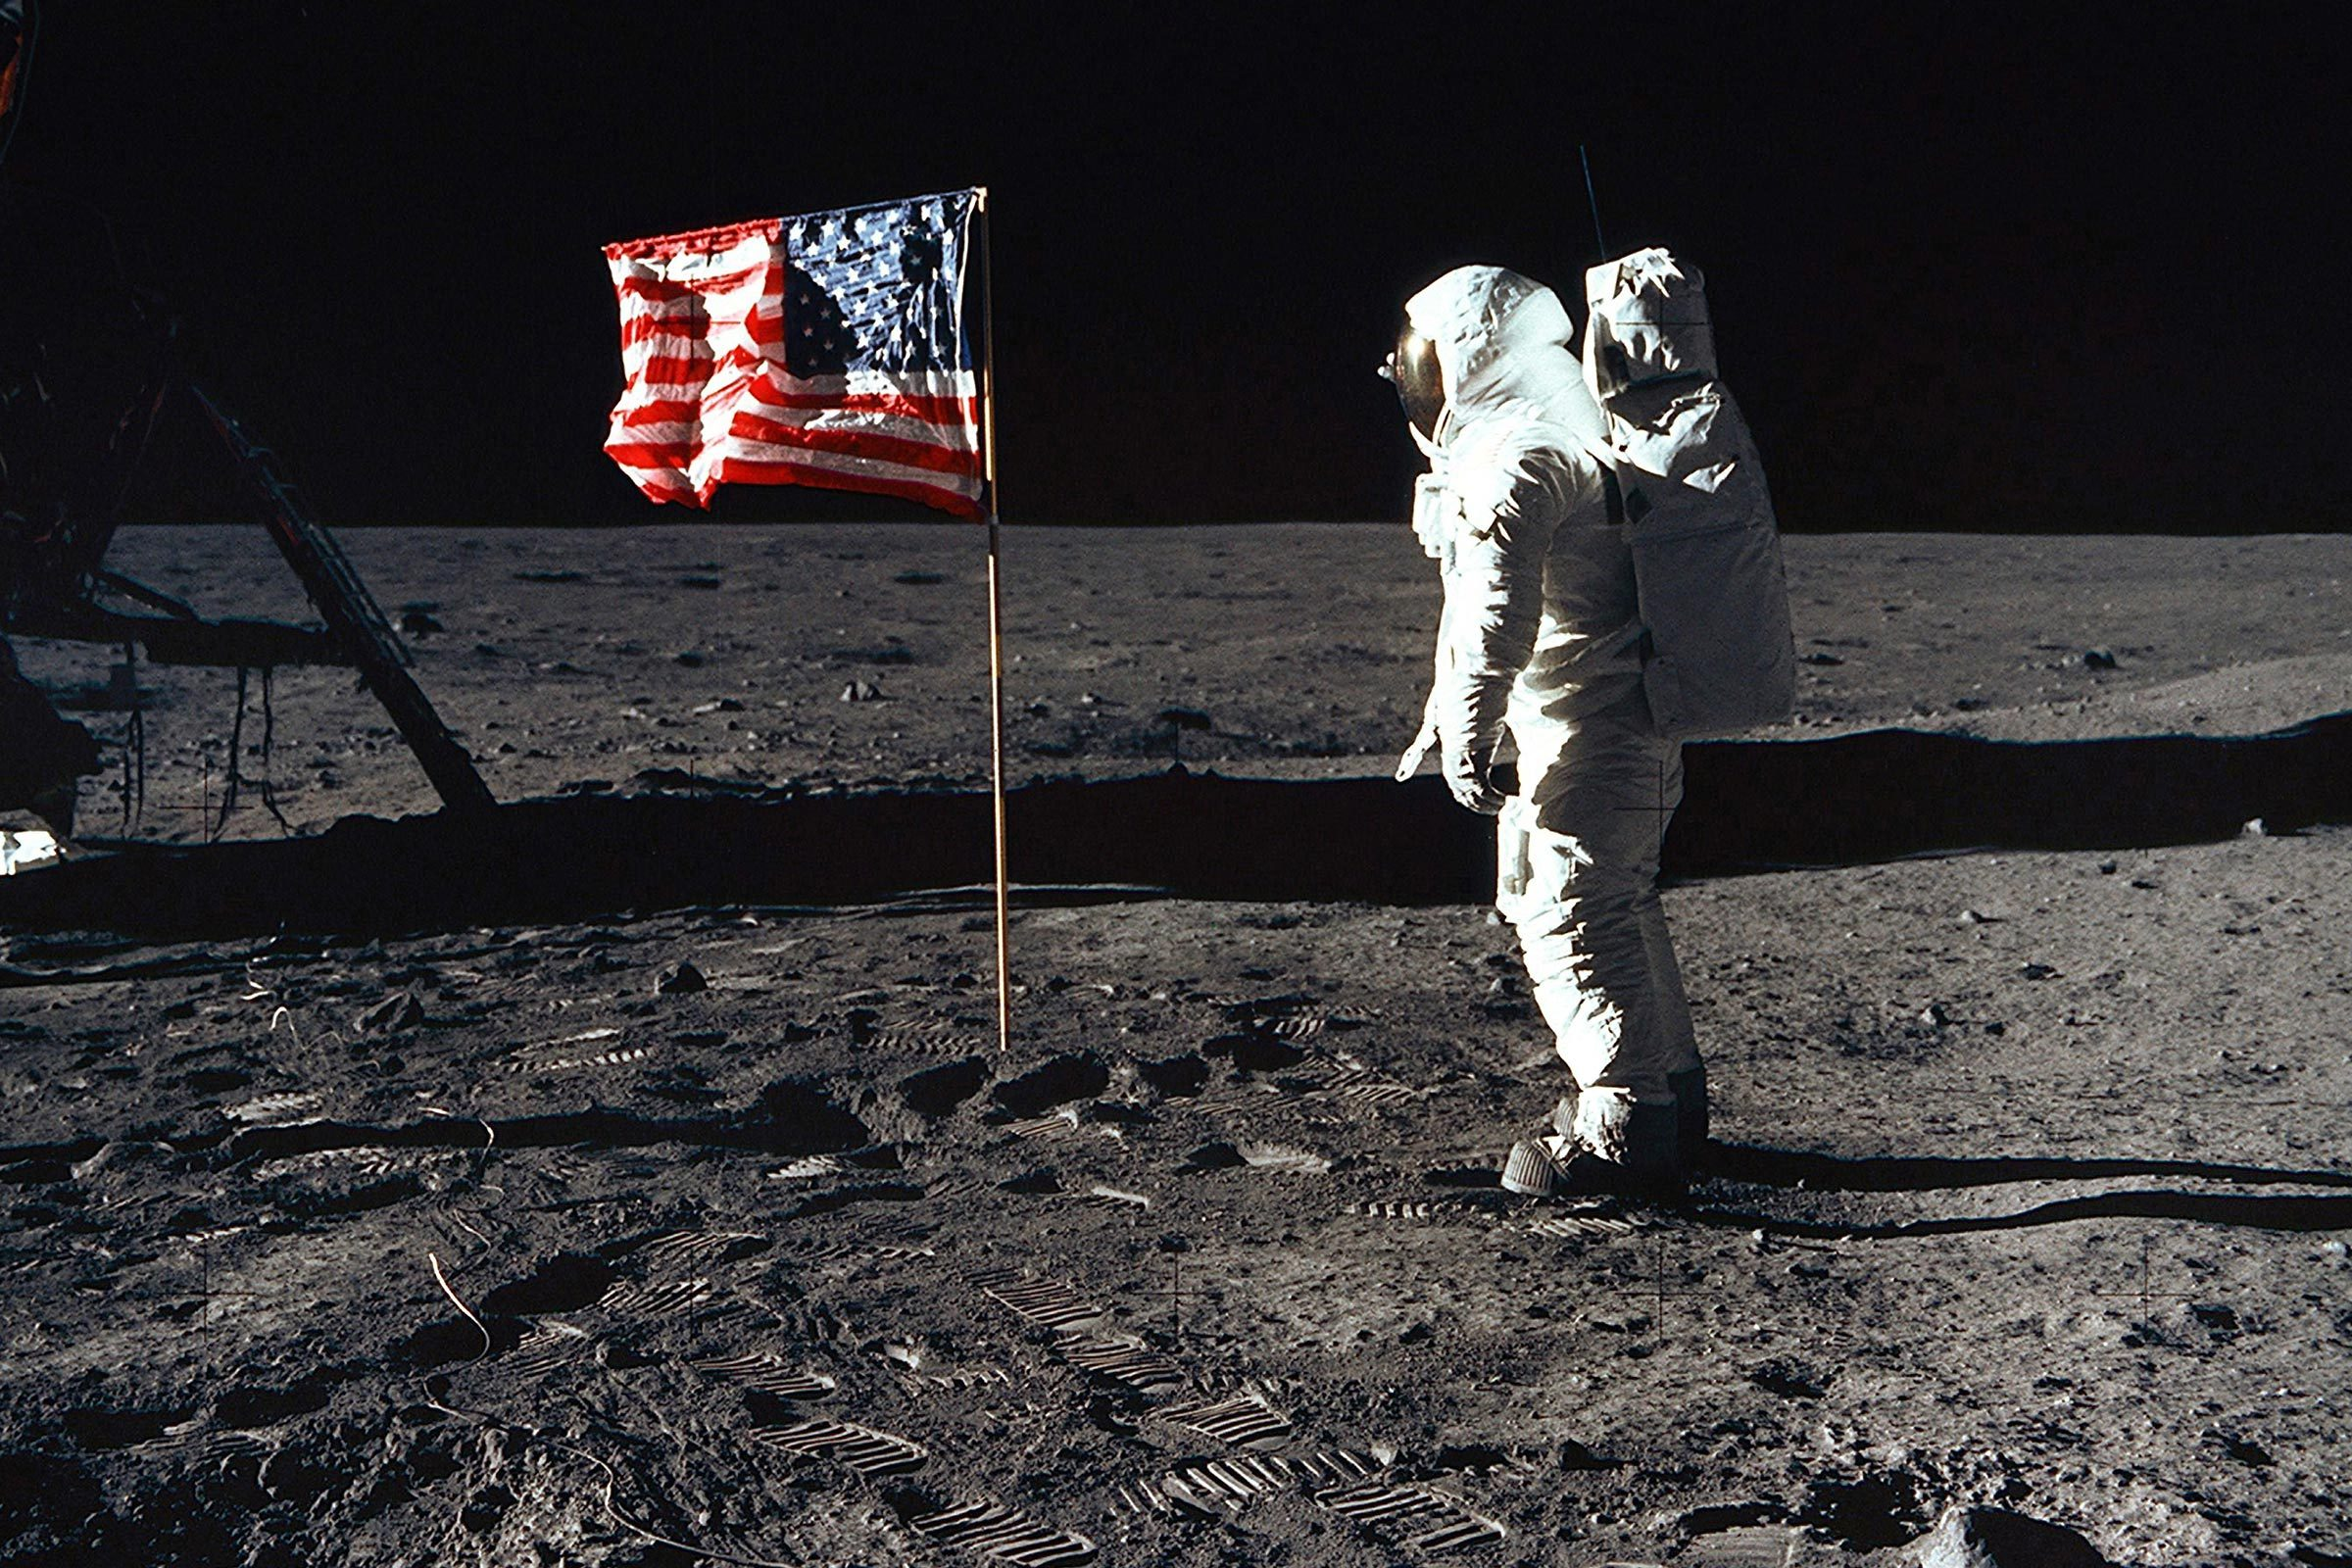 Astronaut Edwin 'Buzz' Aldrin, lunar module pilot of the first lunar landing mission, poses for a photograph beside the U.S. flag during the Apollo 11 mission